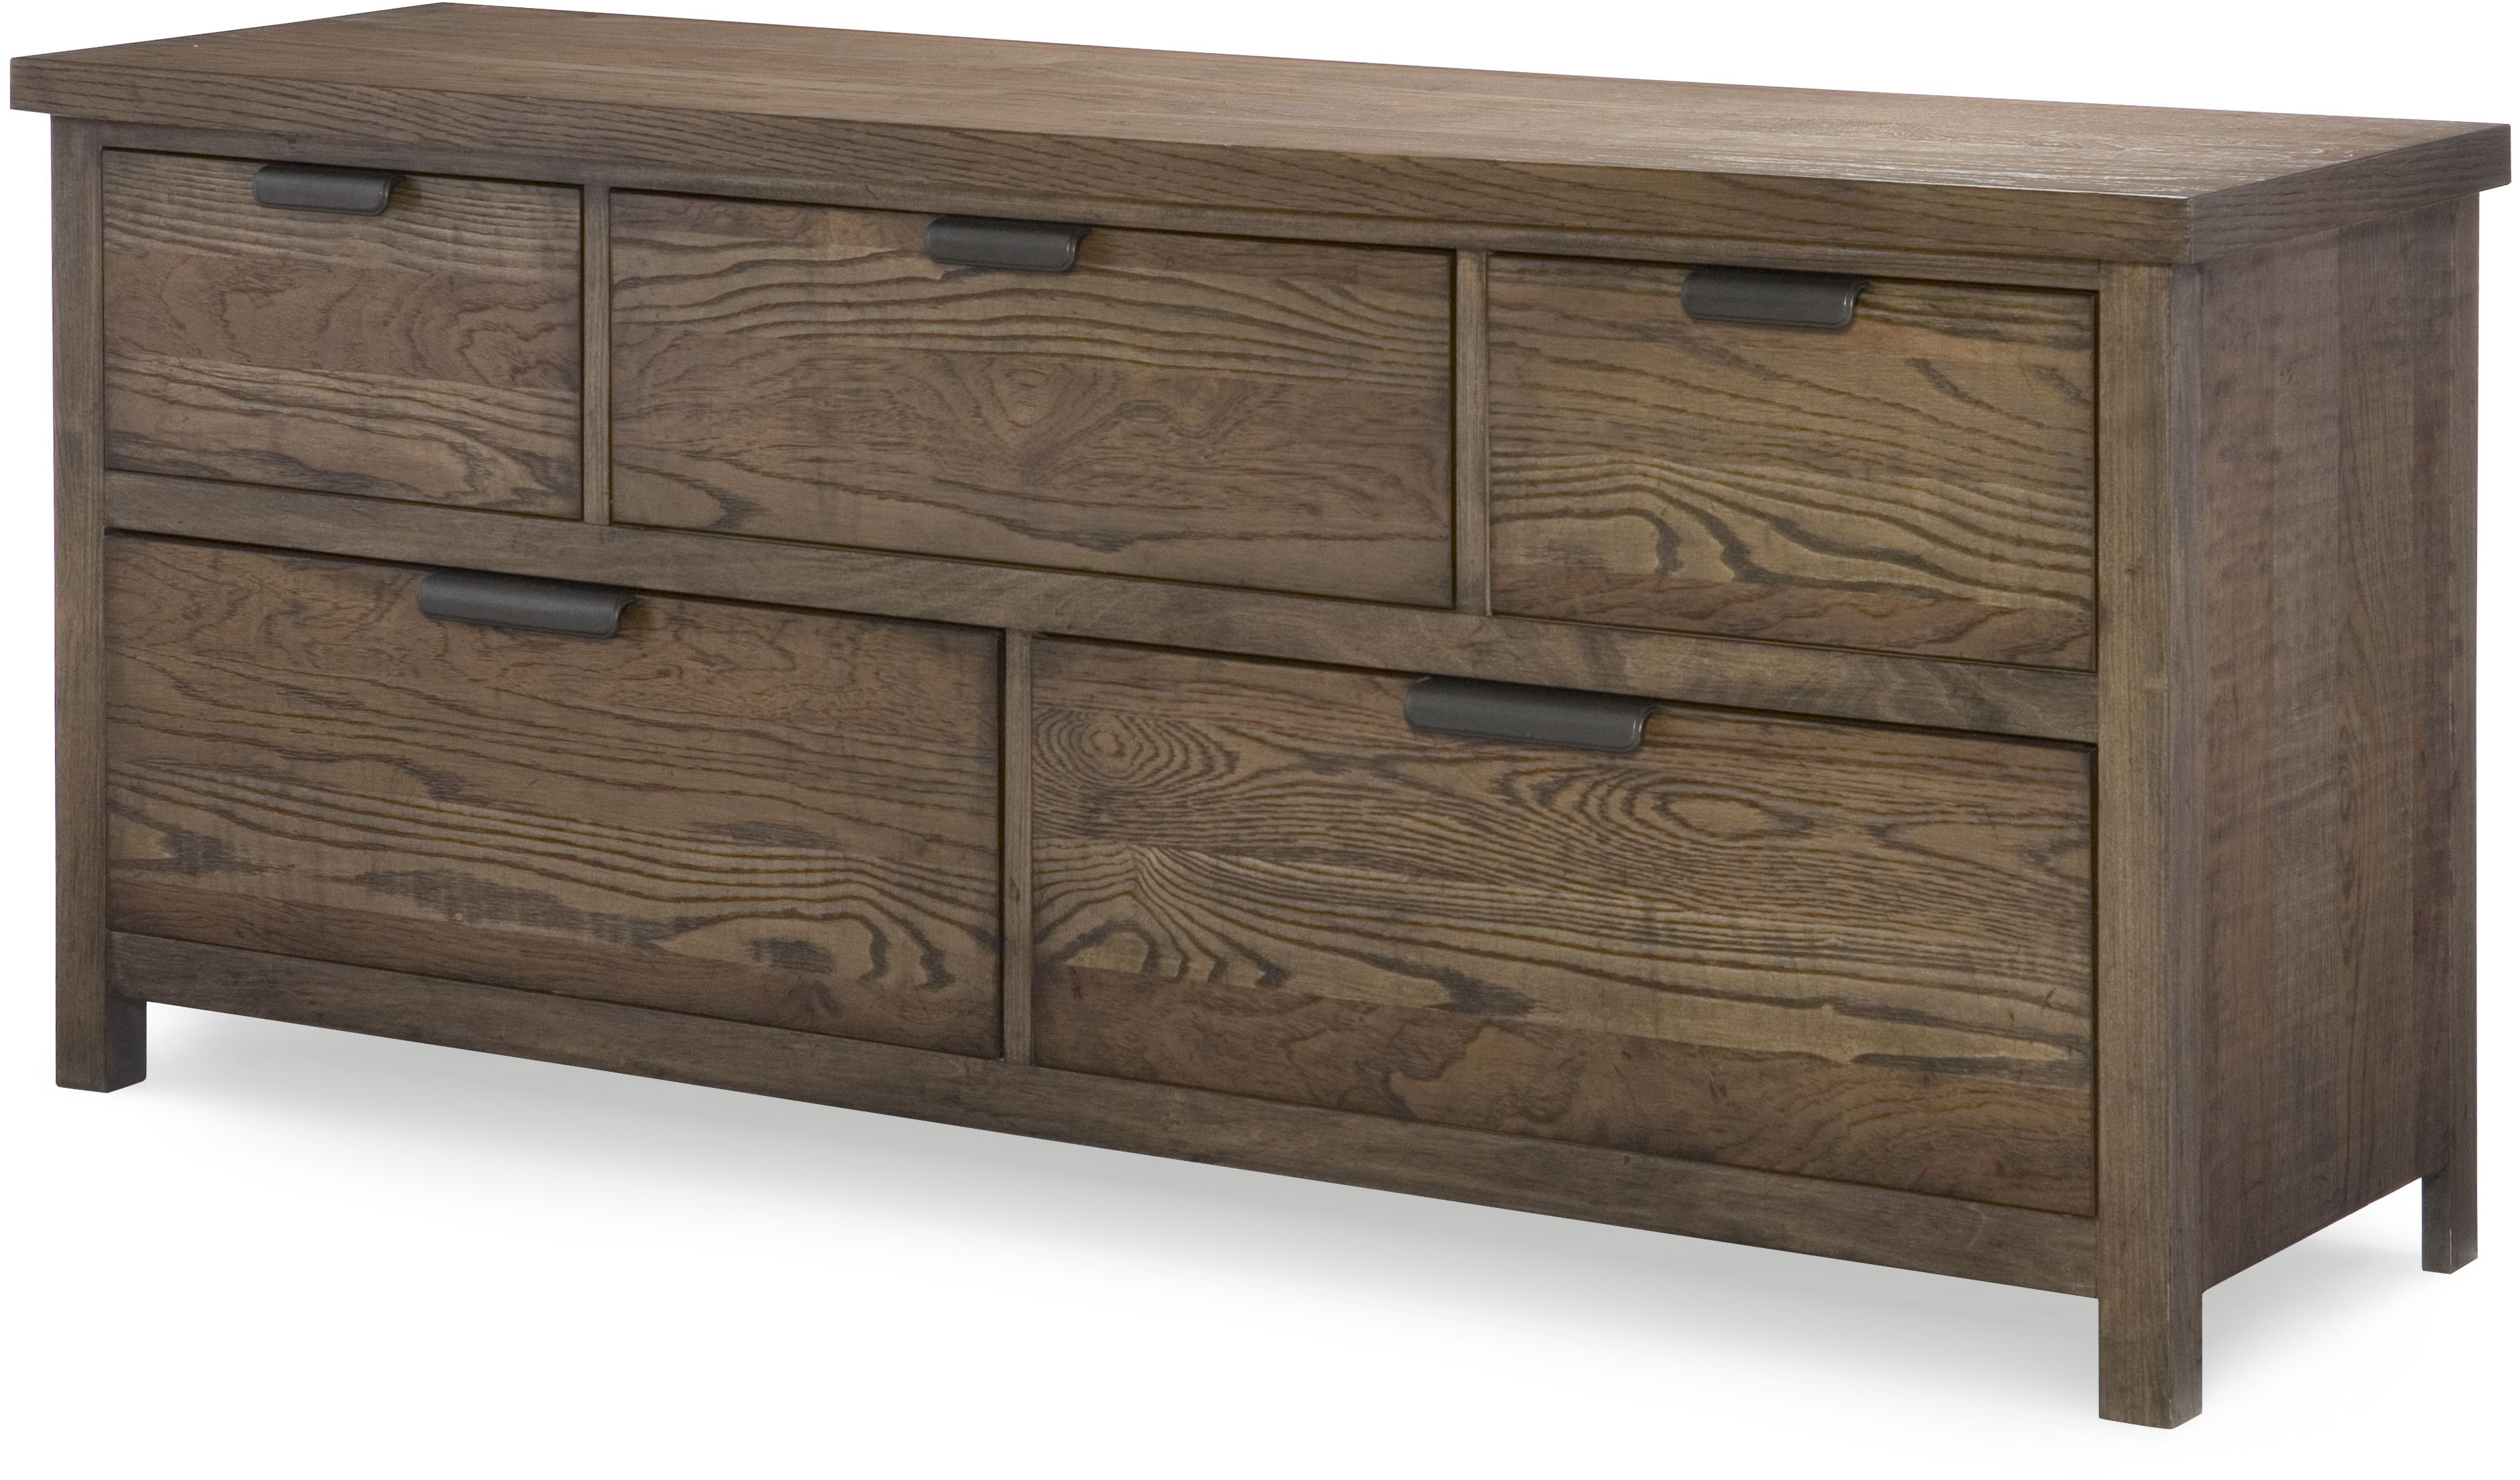 Legacy Classic Kids Fulton County 5 Drawer Dresser  - Item Number: 5900-1200